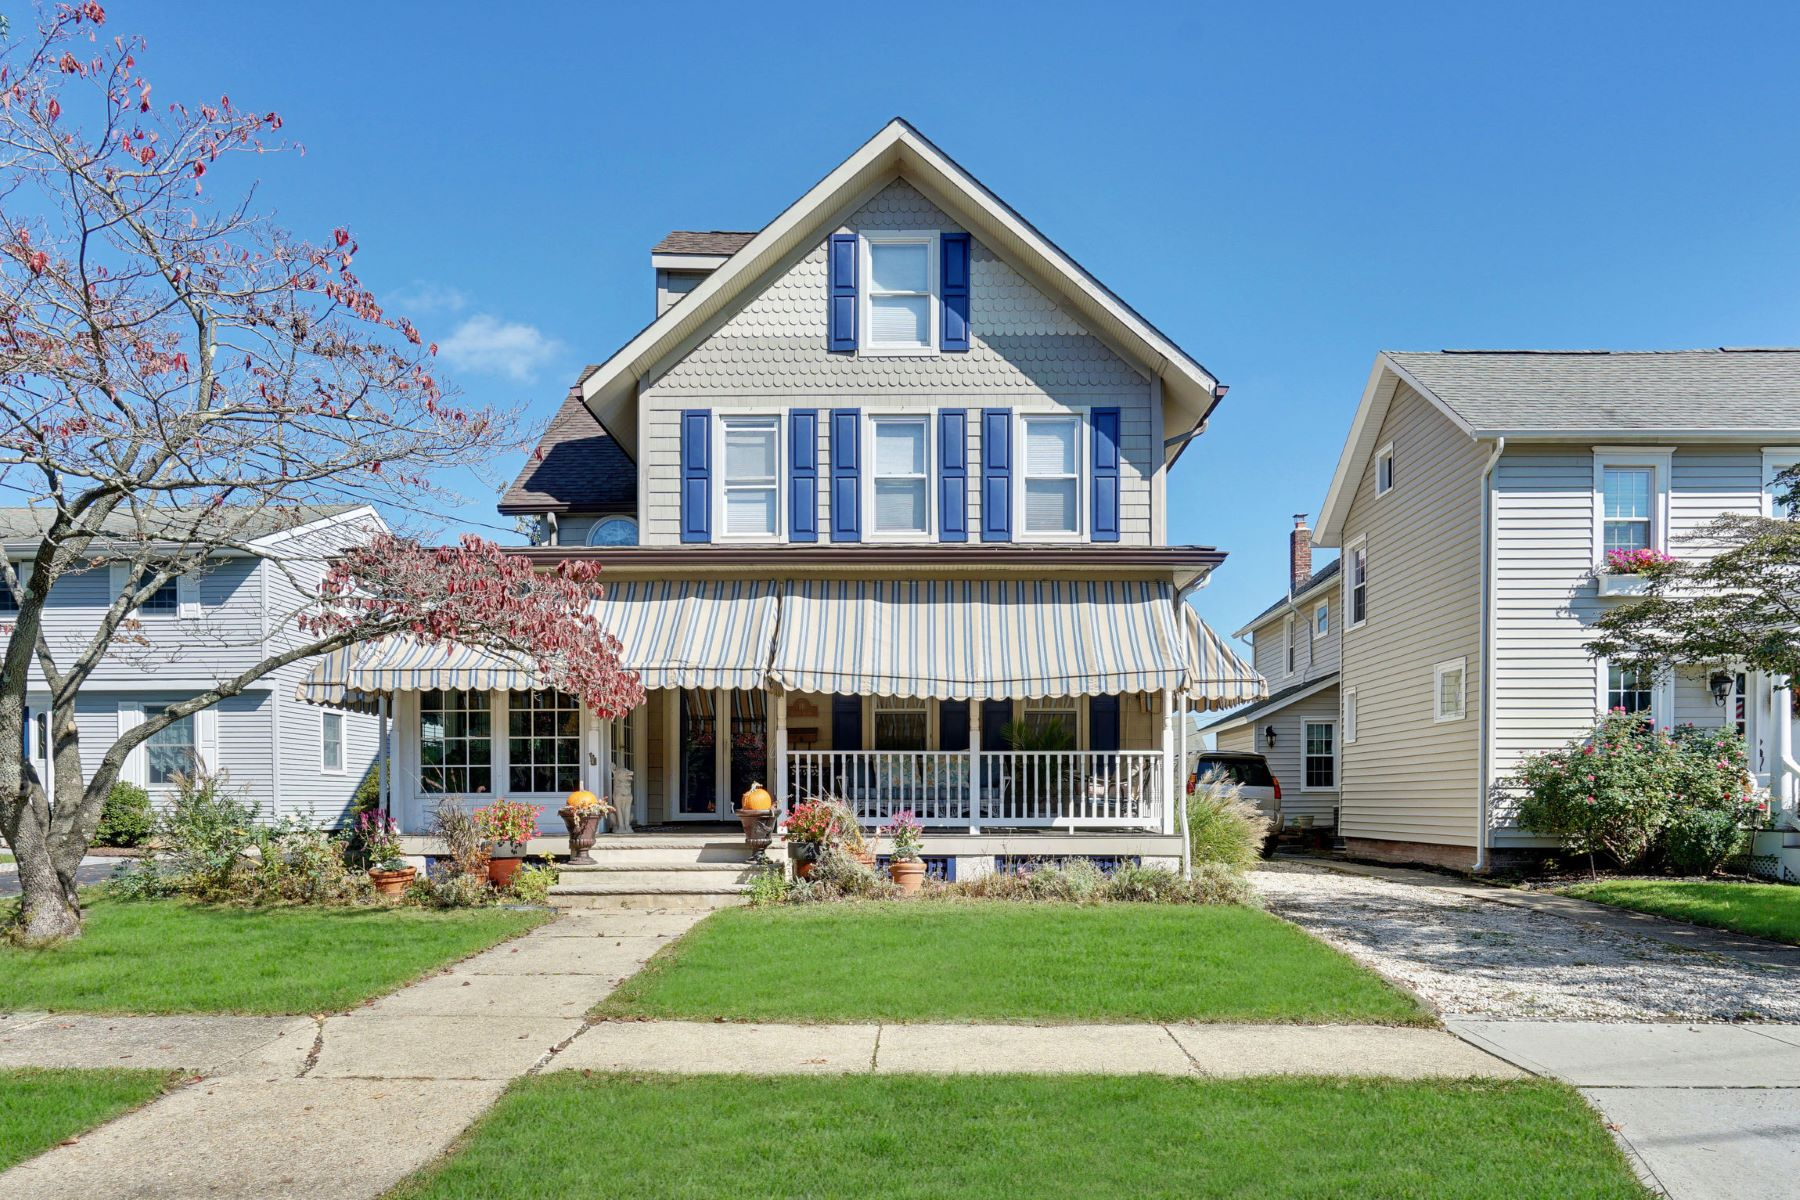 Single Family Homes for Active at Classic Custom Victorian 18 Curtis Avenue Manasquan, New Jersey 08736 United States